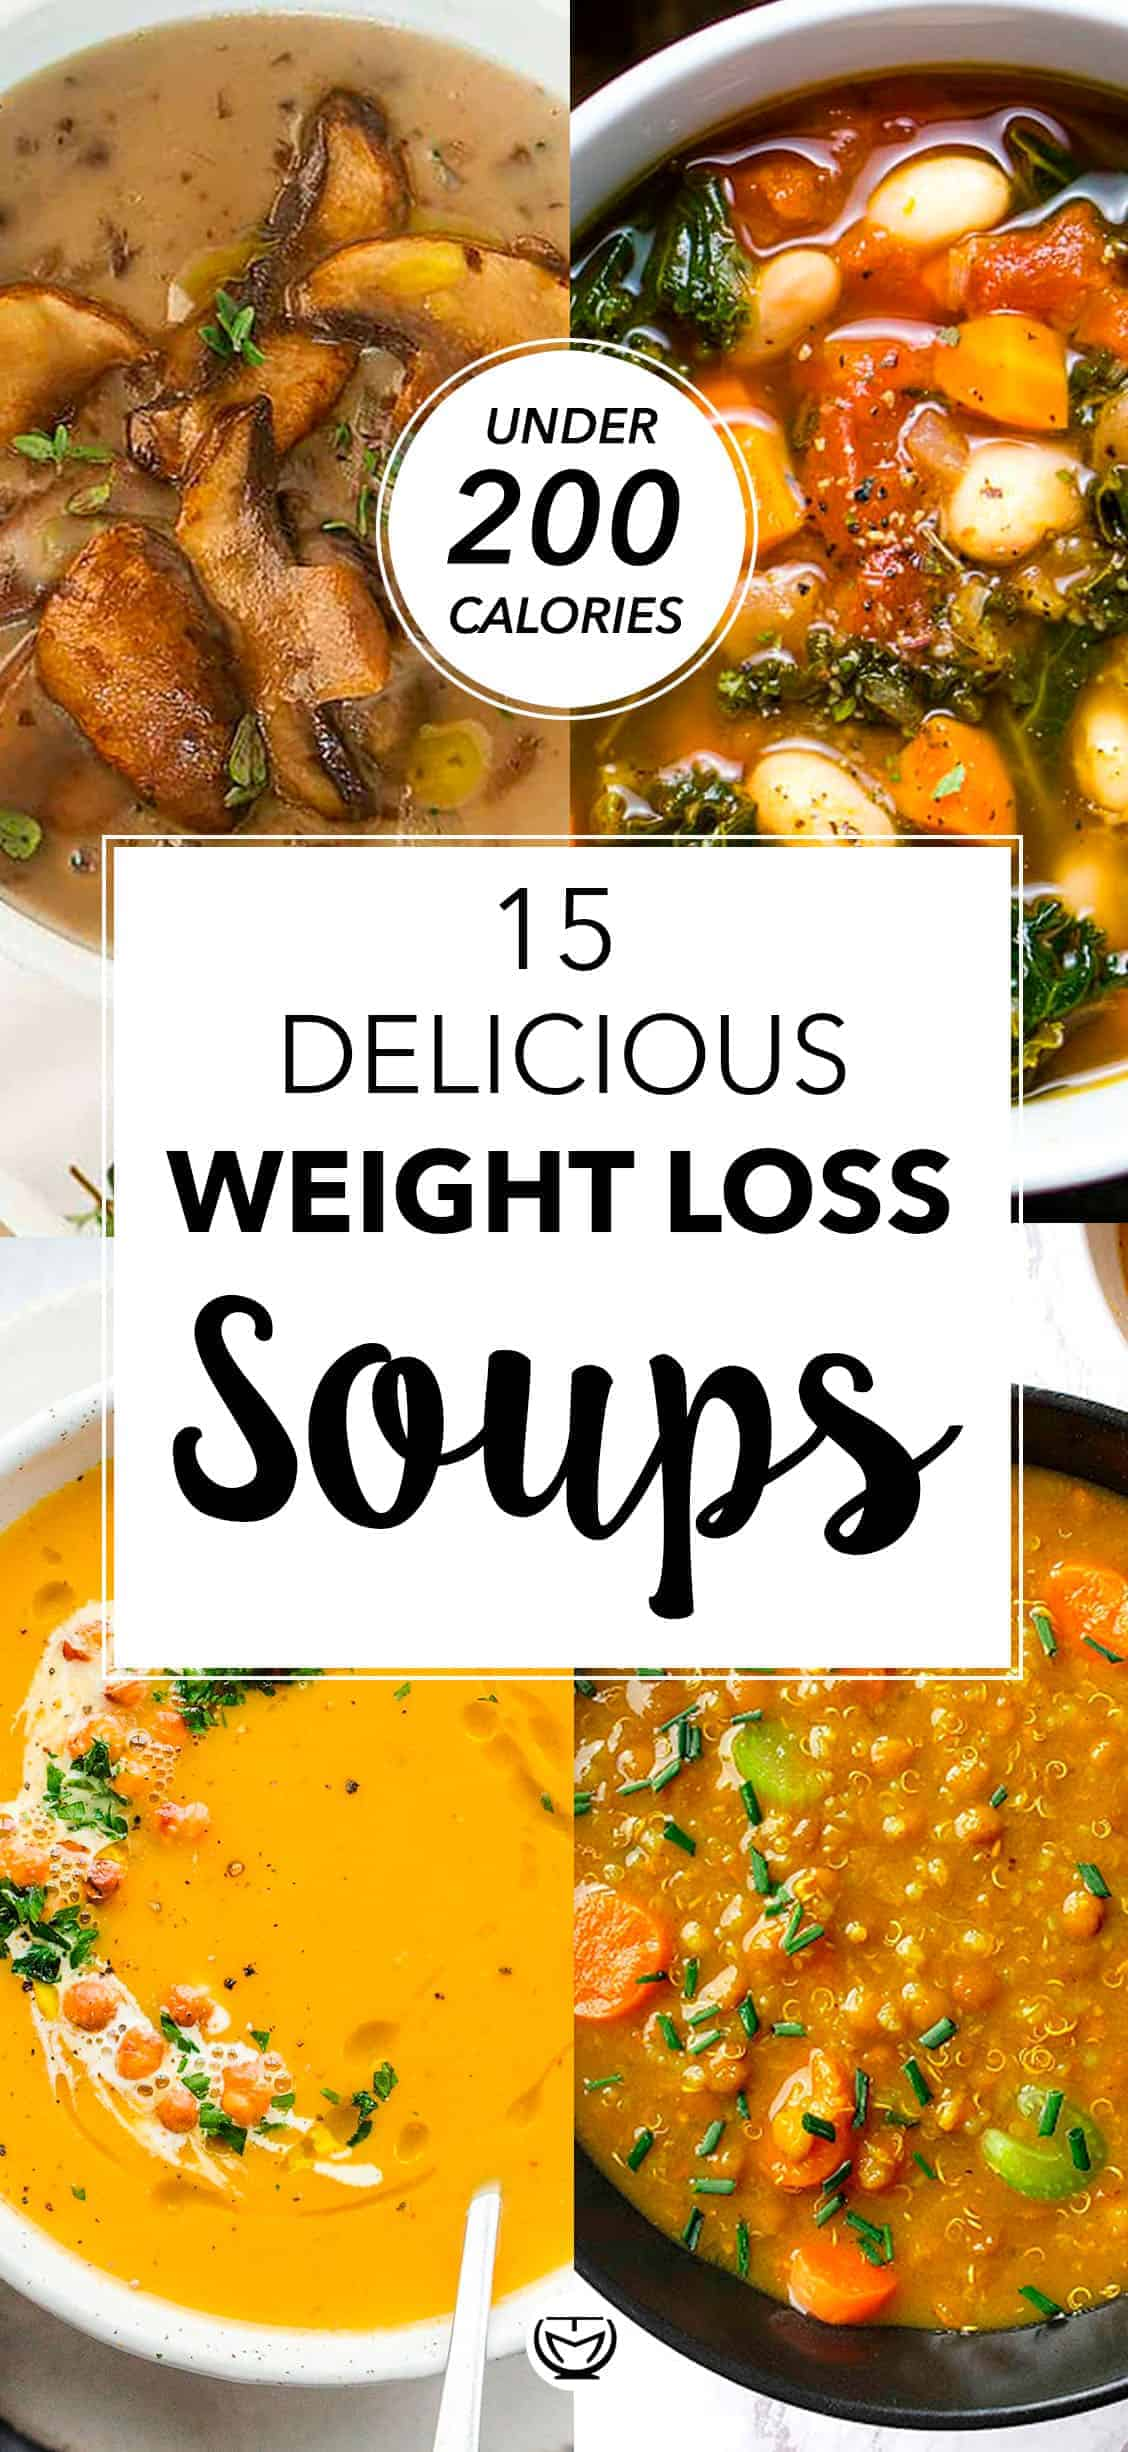 These delicious weight loss soups are a must for everyone after having indulged in the rich festive food. They're warming, vegetarian, hearty and tadadaaa... They contain <strong srcset=